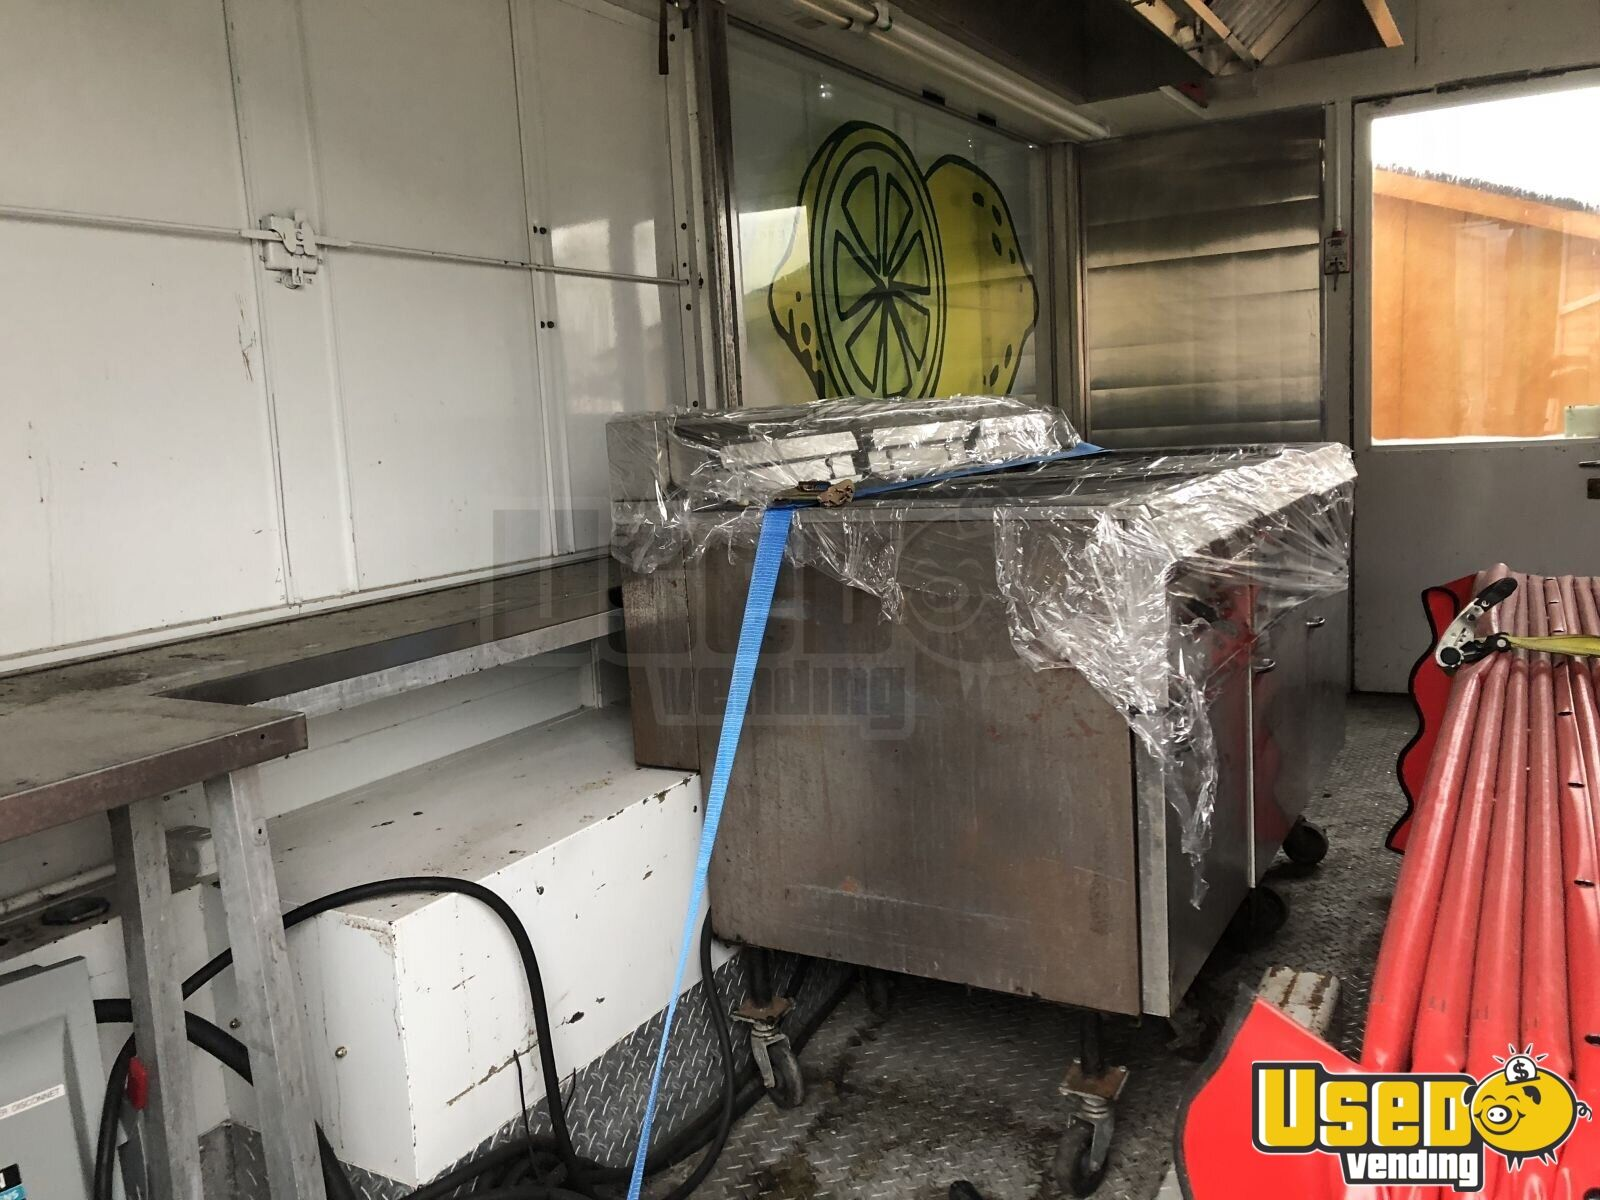 1991 Food Concession Trailer Kitchen Food Trailer Fryer Pennsylvania for Sale - 9